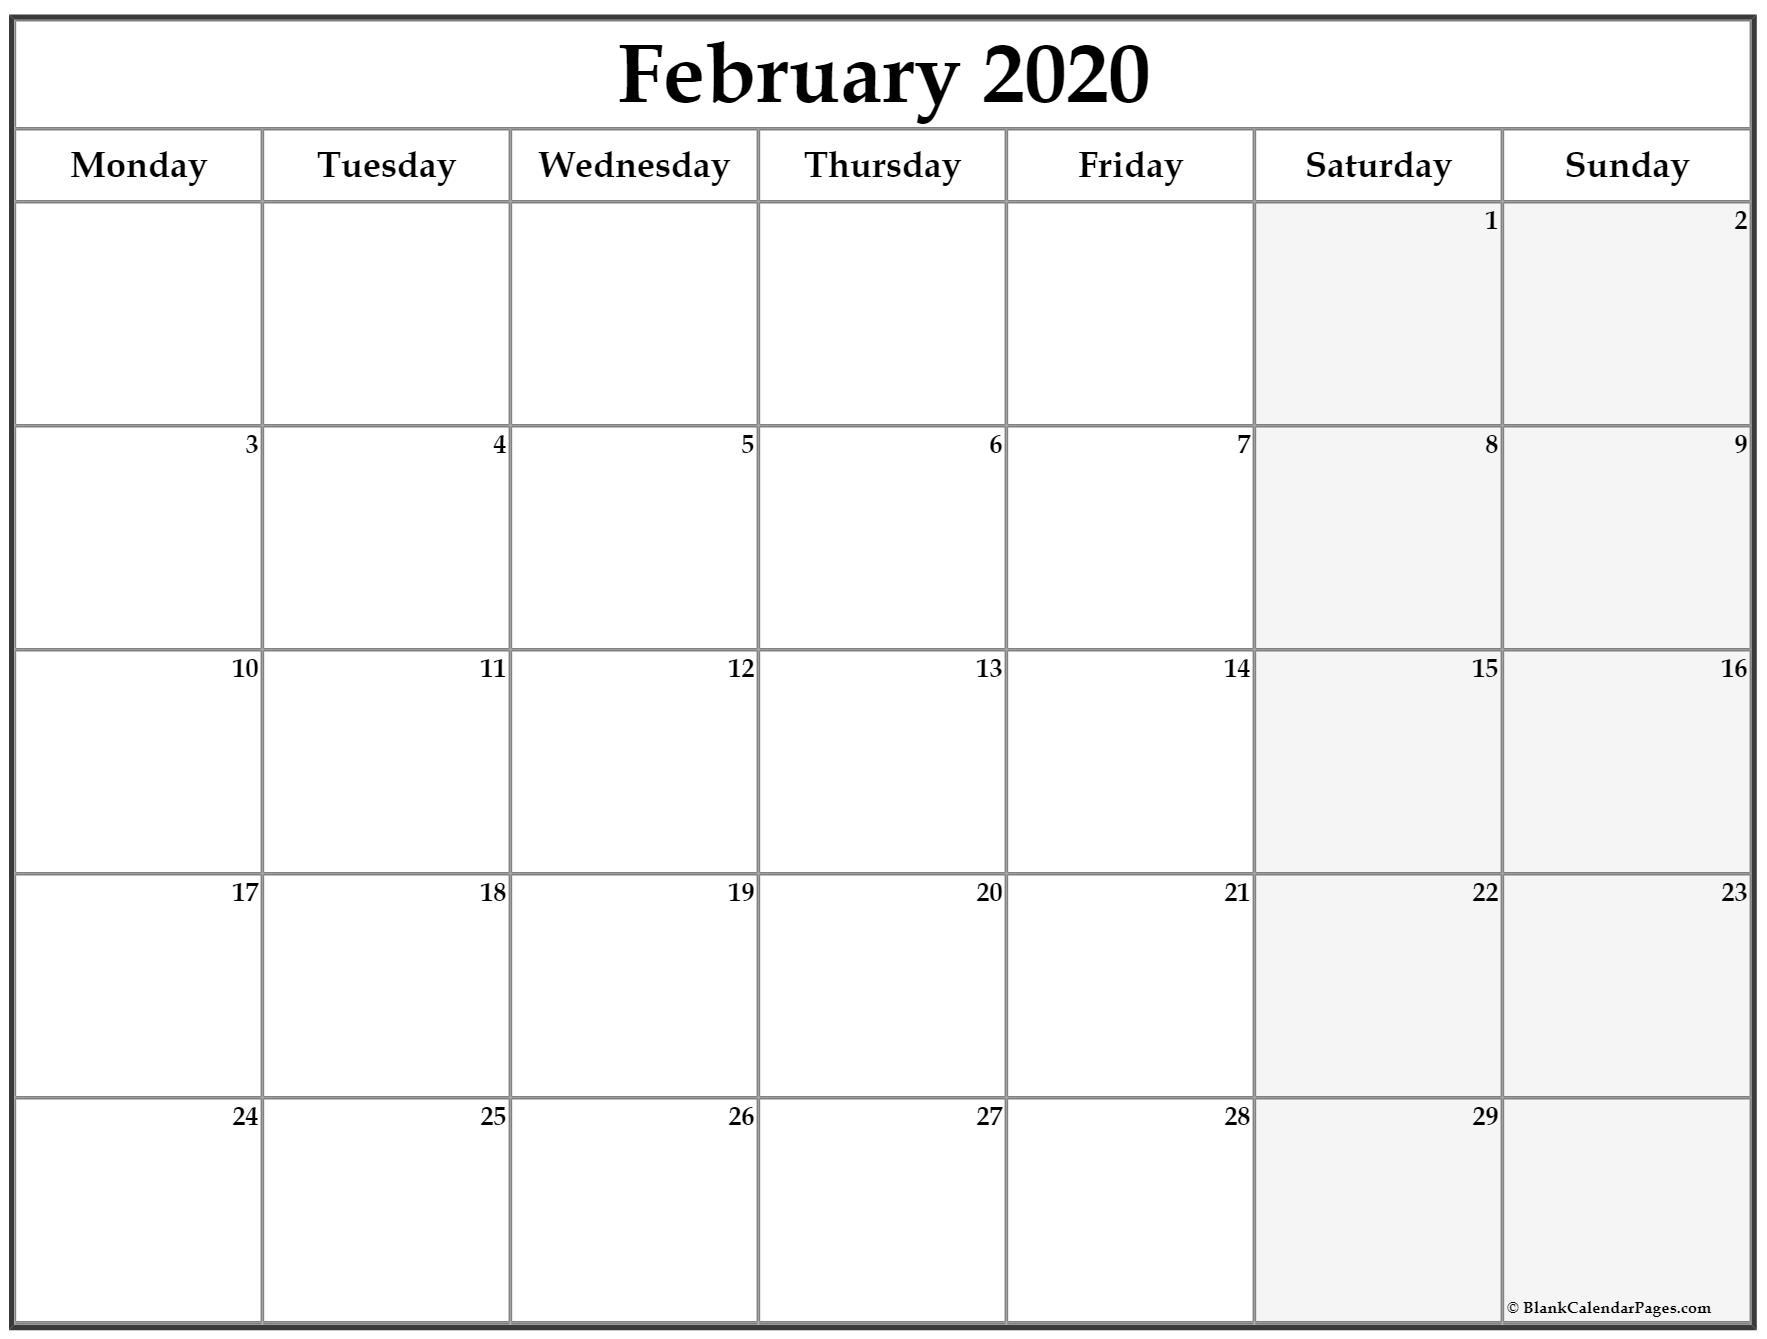 February 2020 Monday Calendar | Monday To Sunday intended for Calendar Template Monday Through Friday